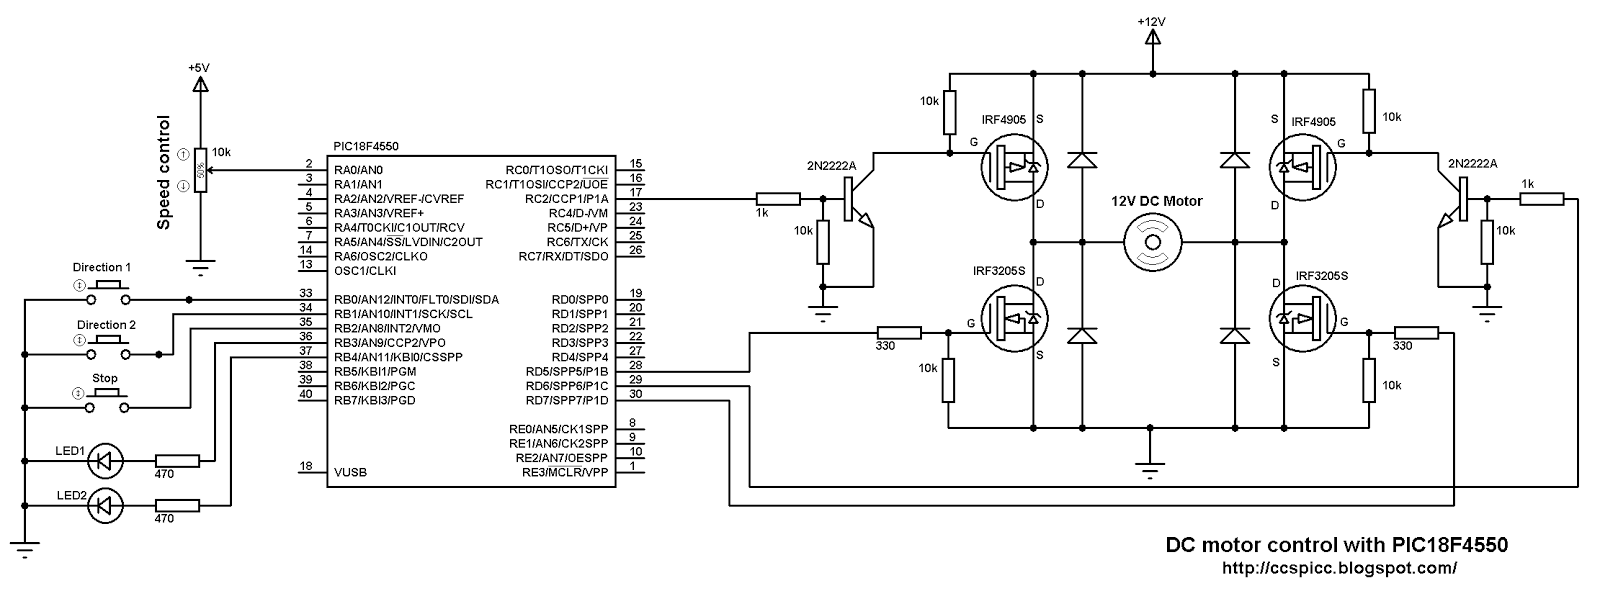 DC Motor Speed And Direction Control With PIC18F4550